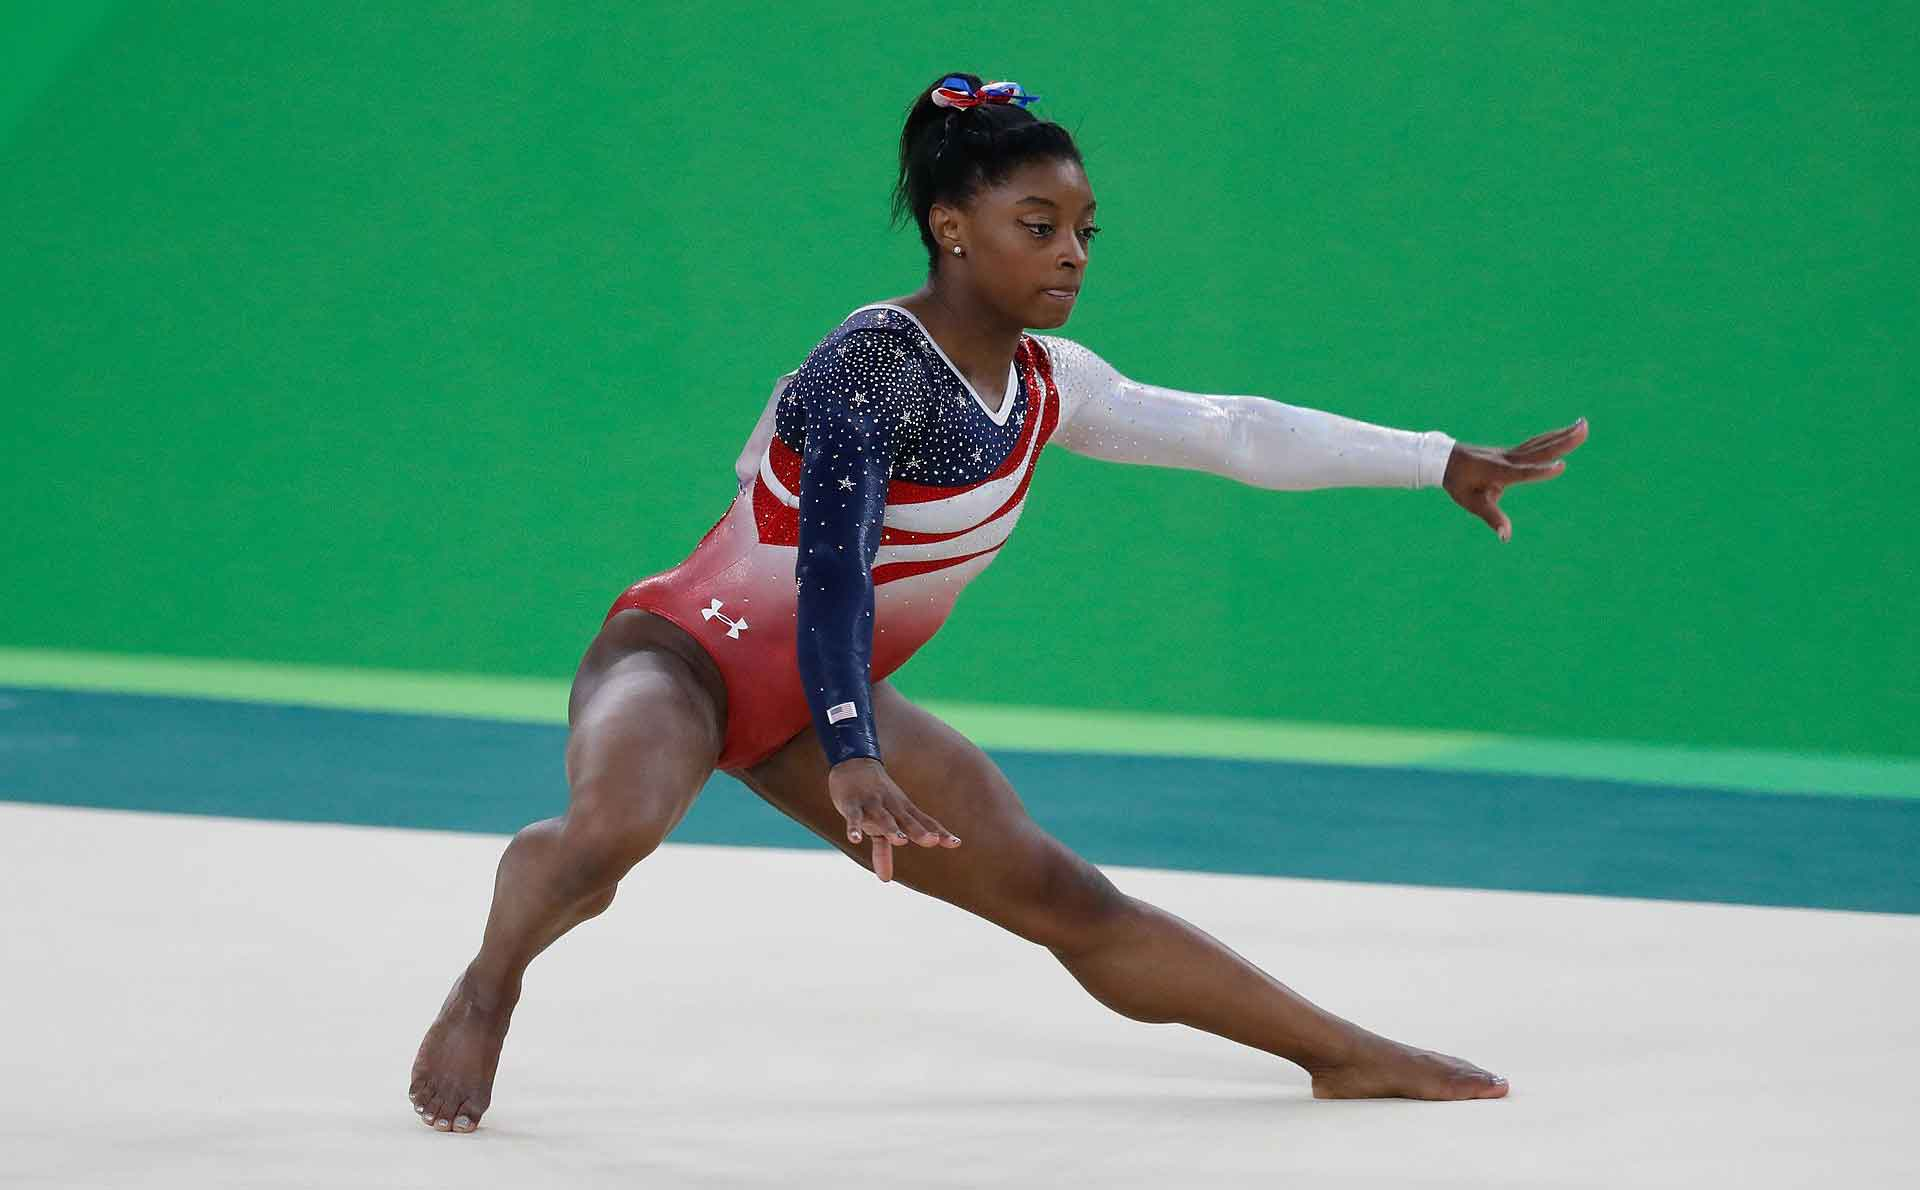 Simon Biles, Olympic Gold Medal Gymnast